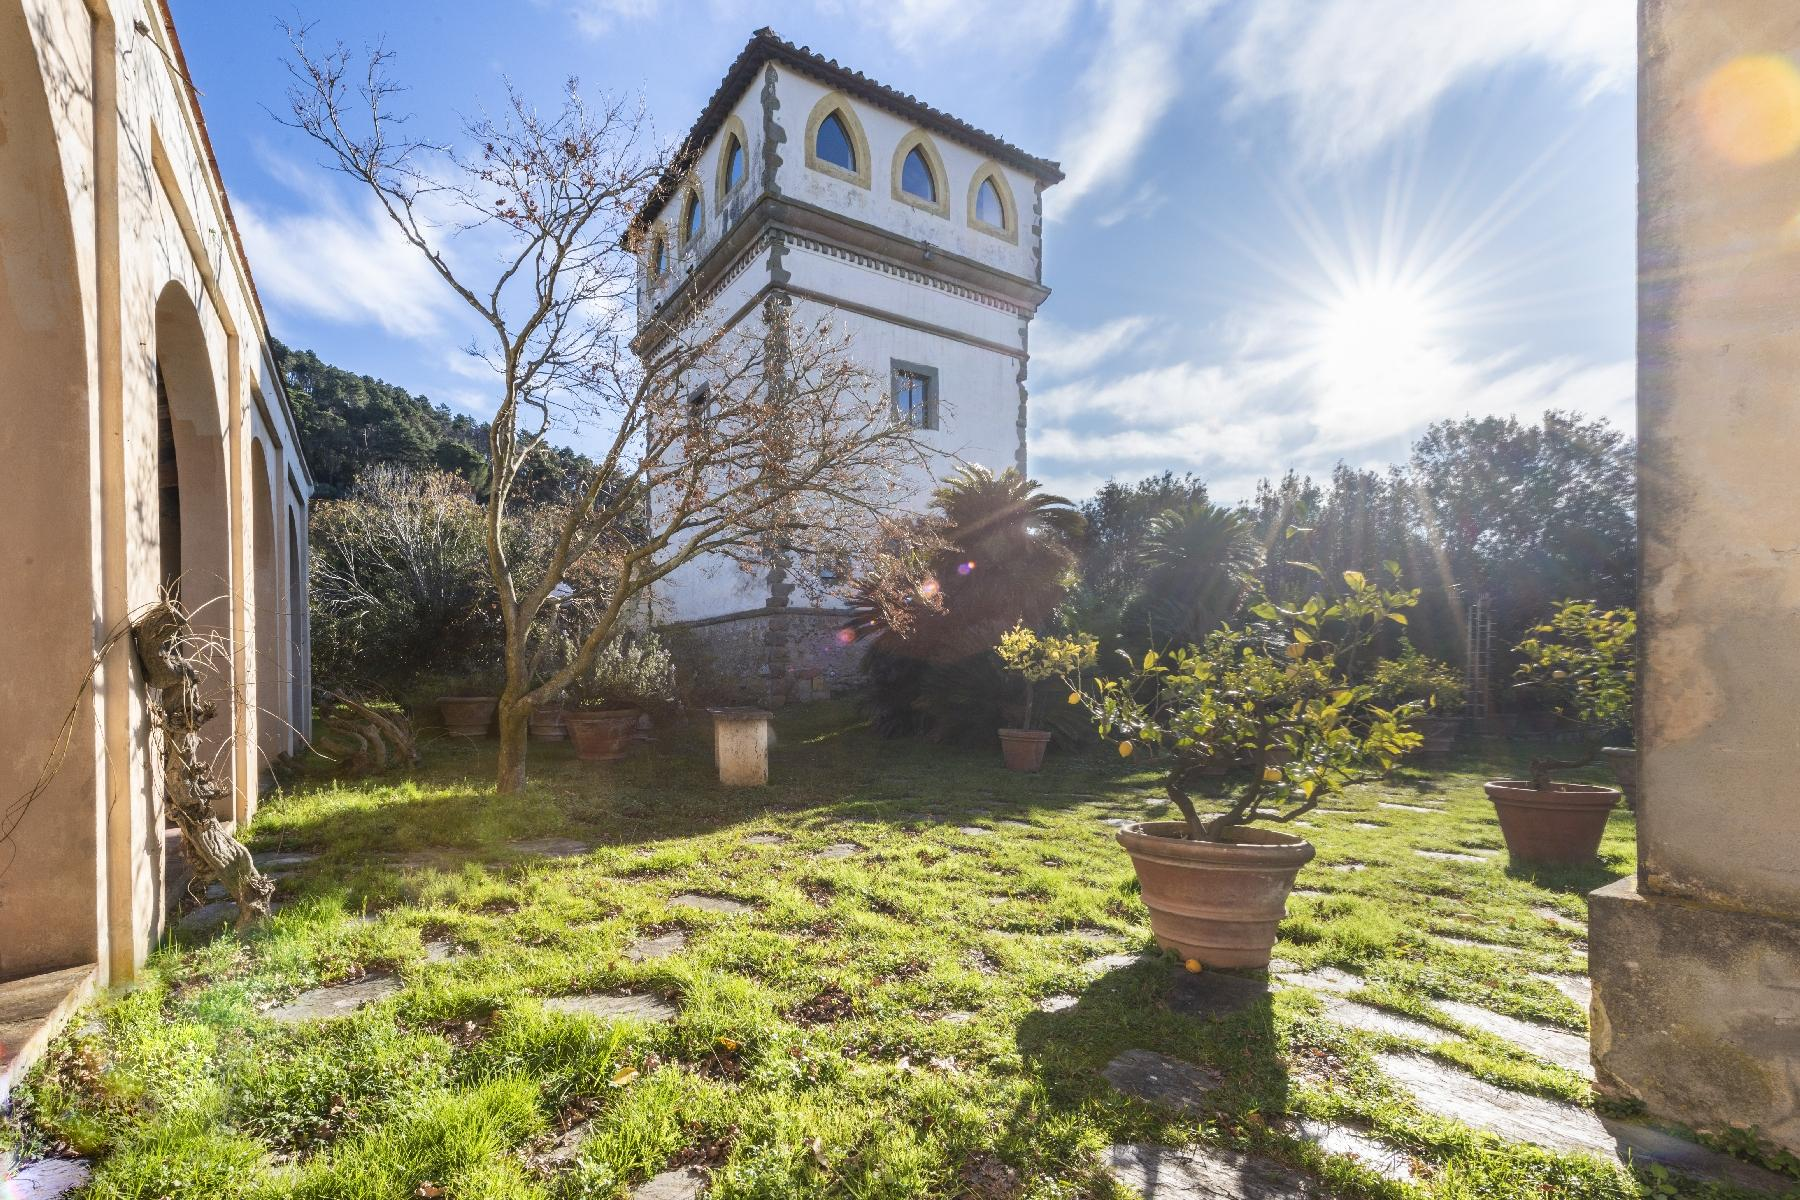 Stunning historic Villa with tower in Camaiore - 15